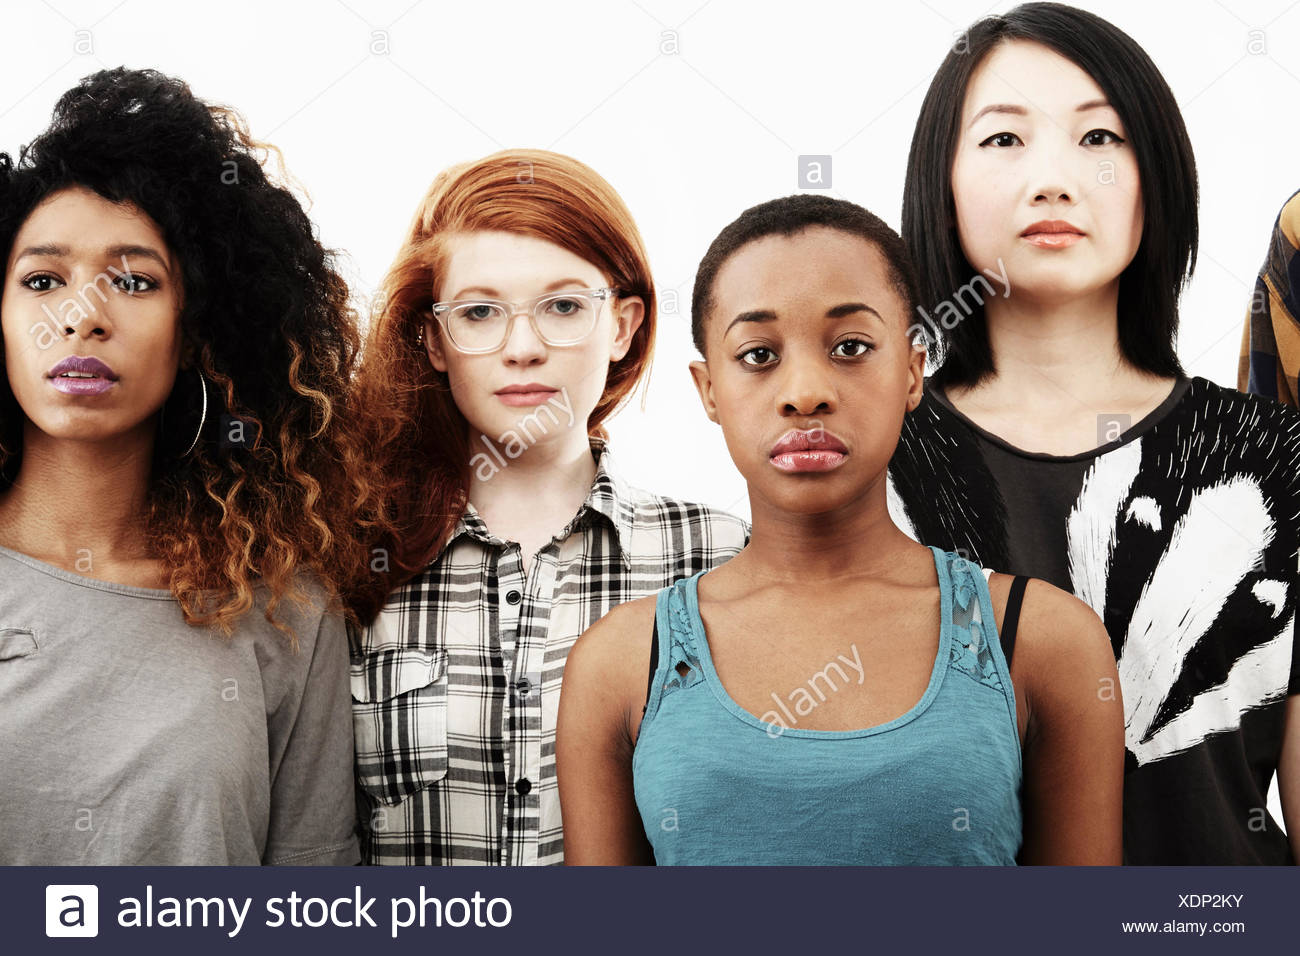 Formal studio portrait of four young women with blank expressions - Stock Image